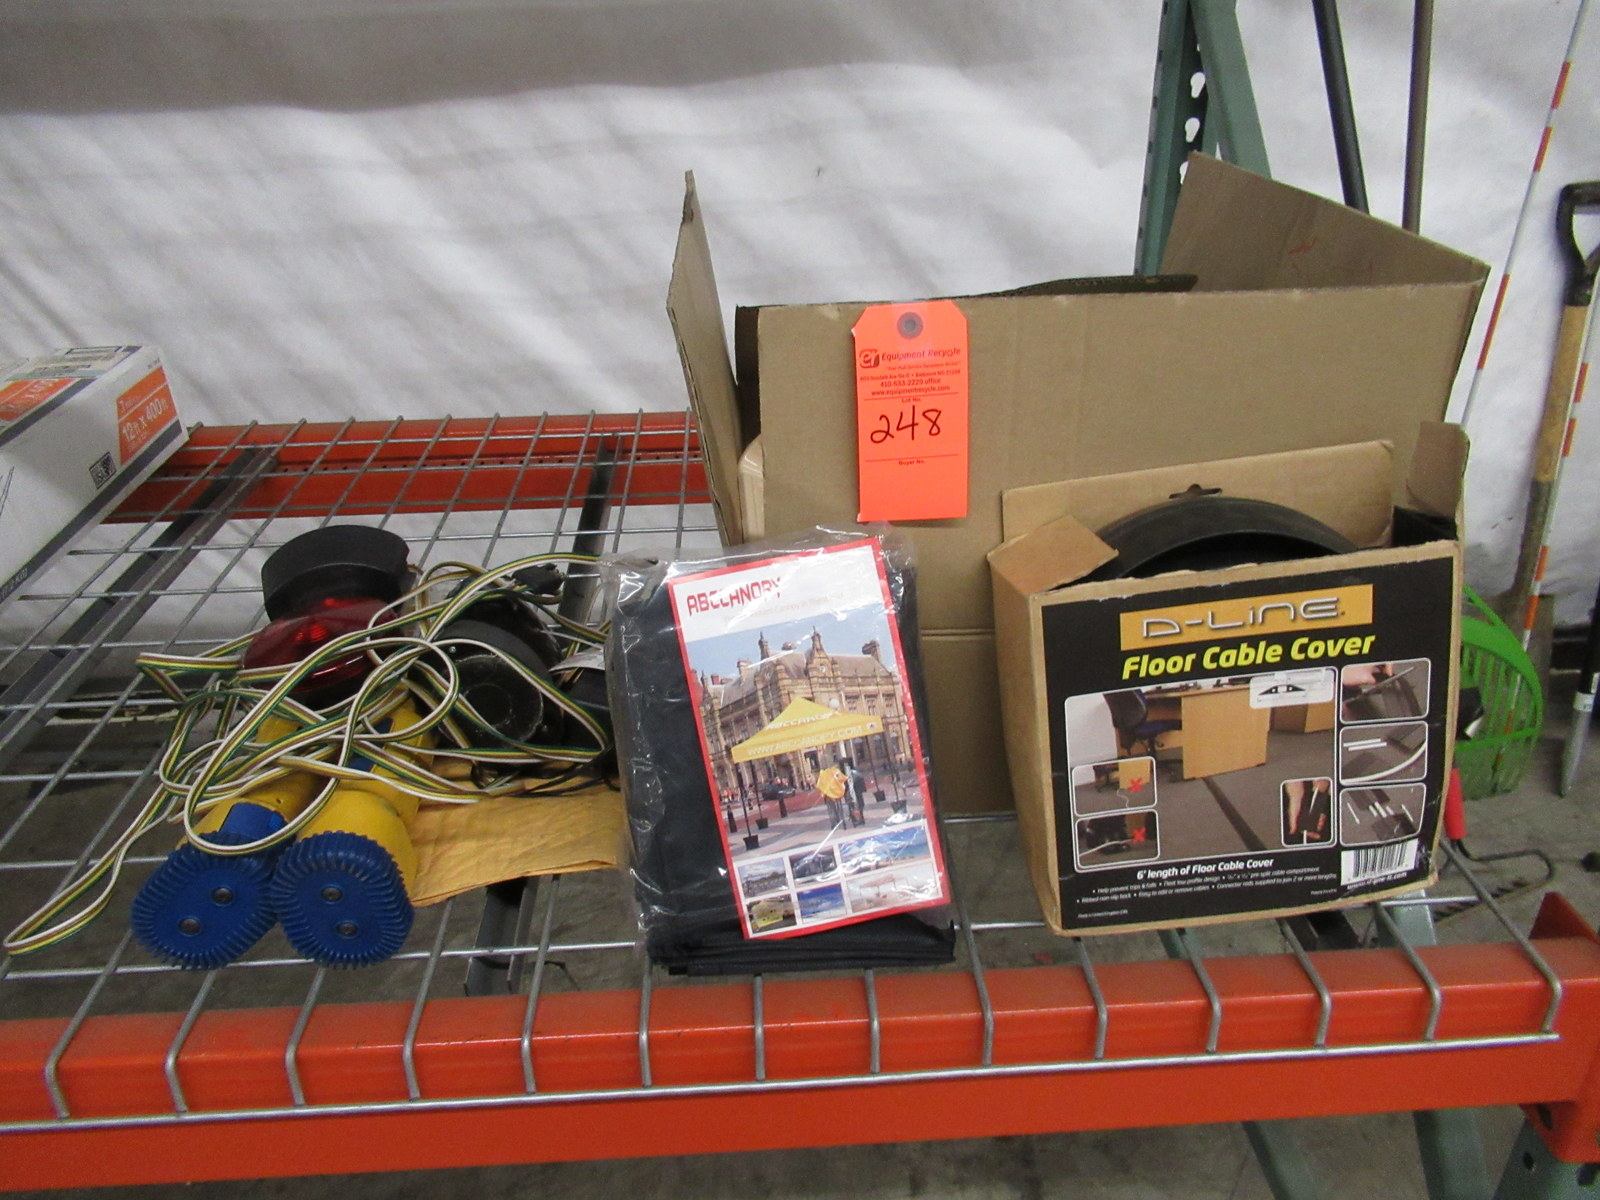 Lot 248 - Cables, Black Canopy, Floor Cable Cover, Painting Supplies, and more